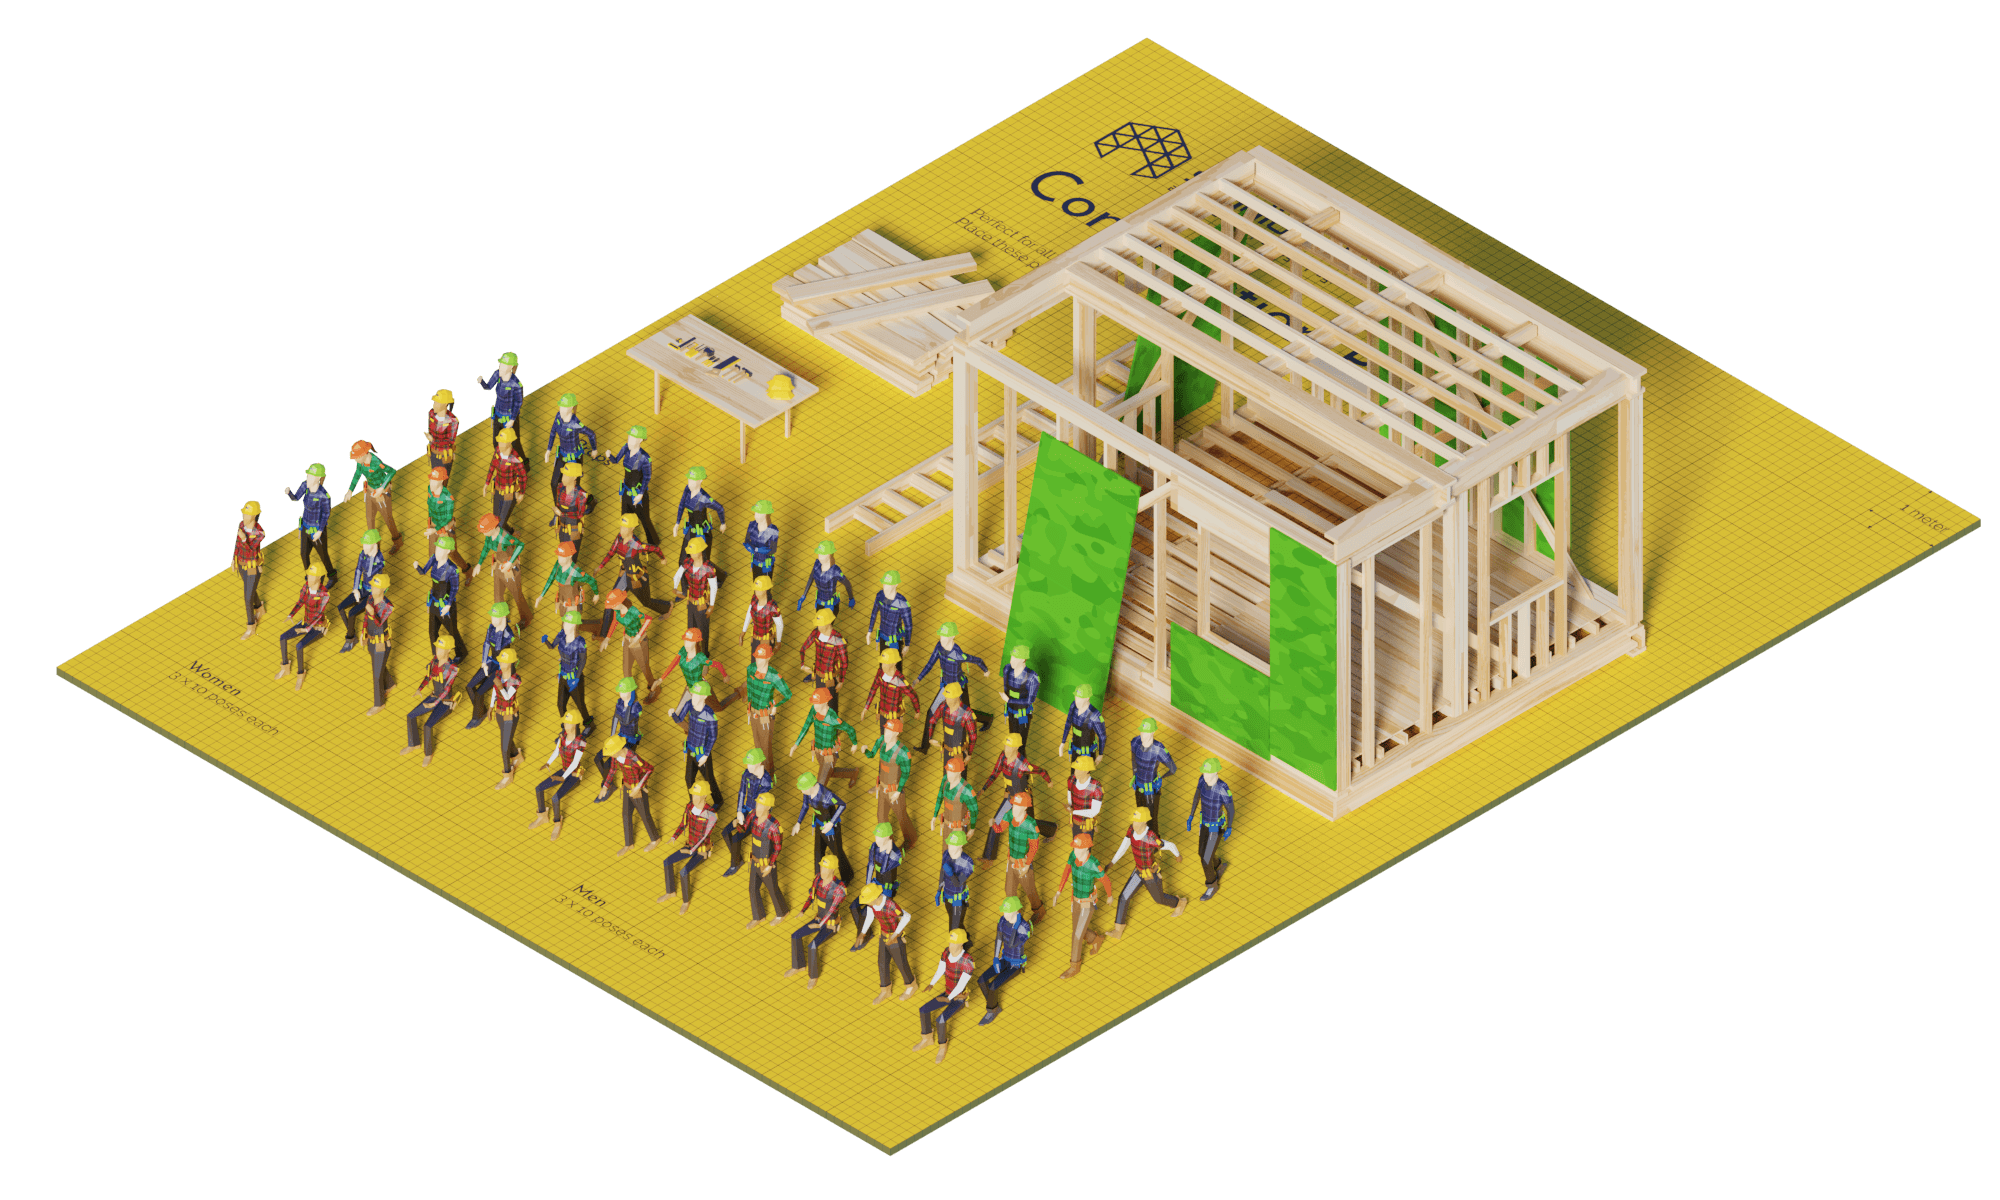 3D render lowpoly people crowd population model